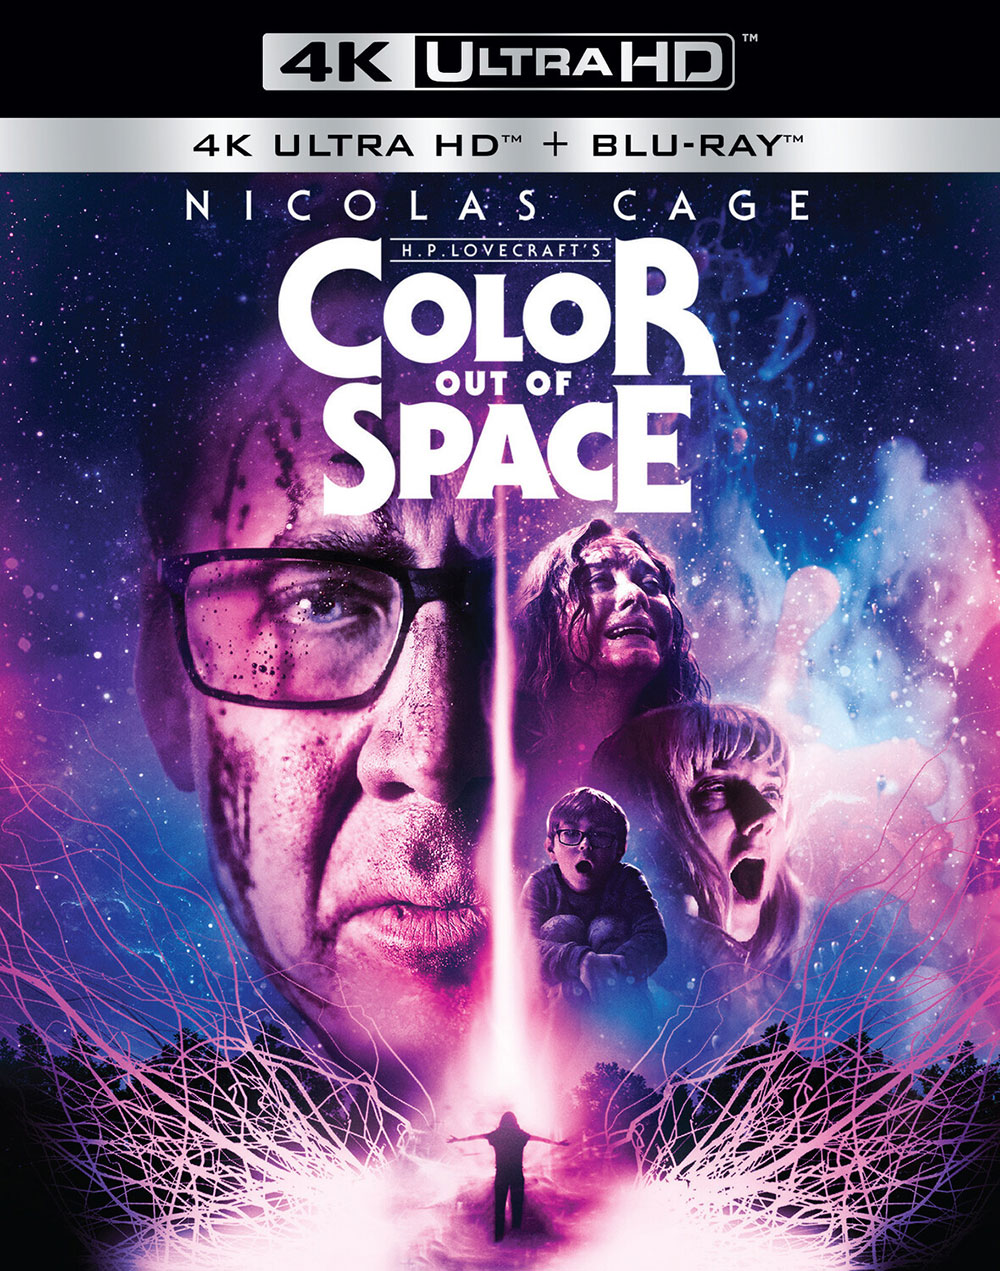 Color Out of Space (Ultra HD 4K Blu-ray)